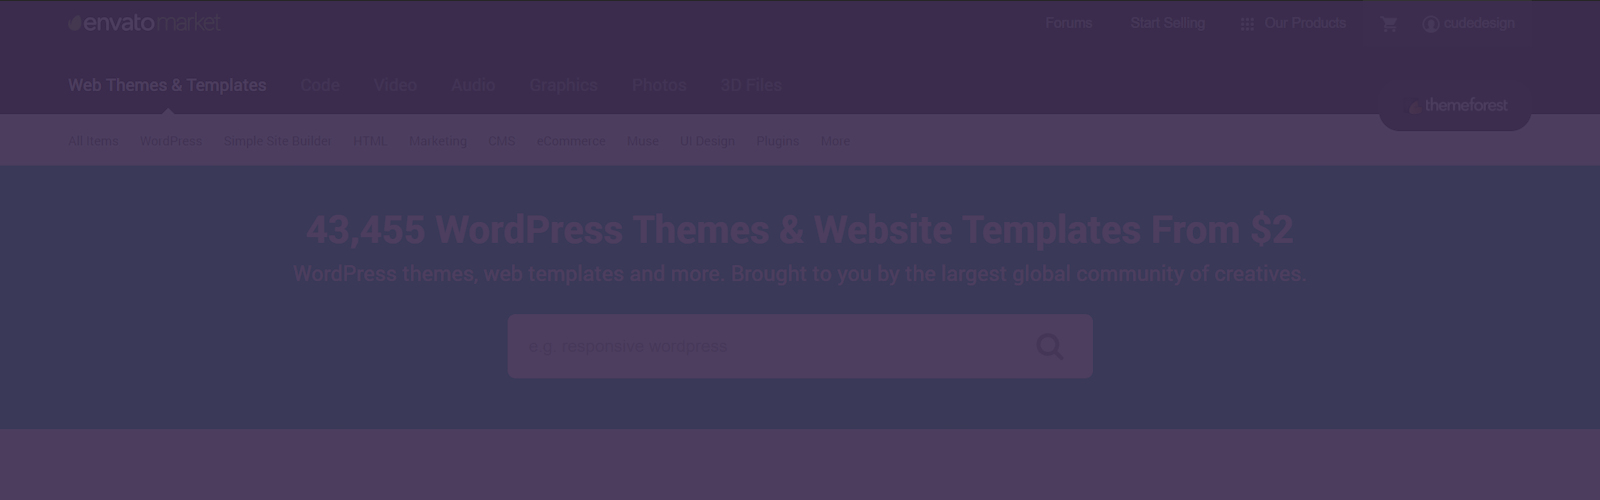 When should I choose a bespoke WordPress website over using a premium theme?